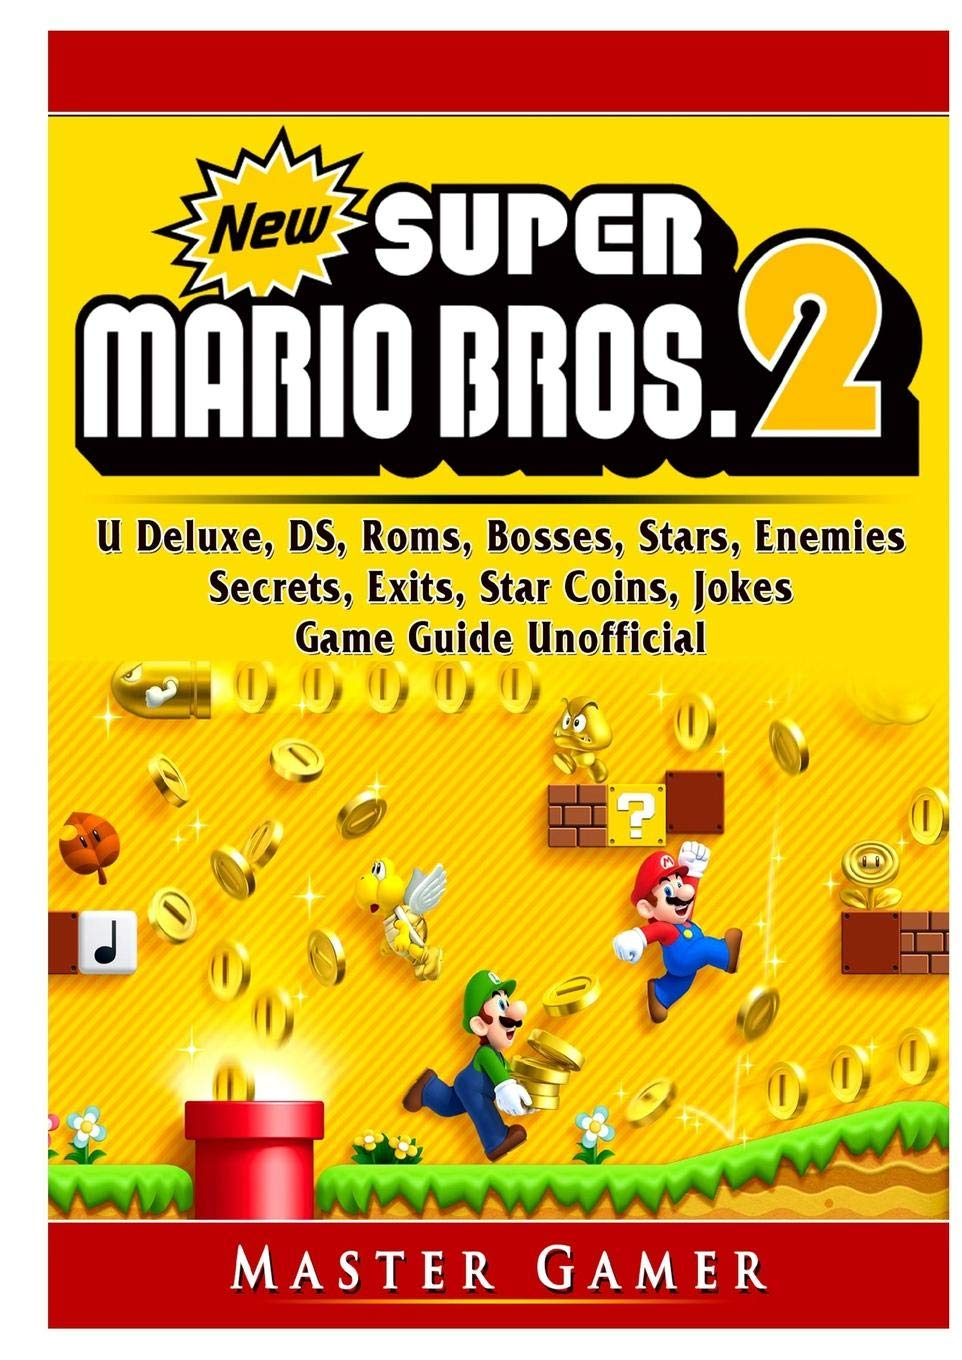 New Super Mario Bros 2, DS, 3DS, Secrets, Exits, Walkthrough, Star Coins, Power Ups, Worlds, Tips, Jokes, Game Guide Unofficial: Amazon.es: Gamer, Master: Libros en idiomas extranjeros